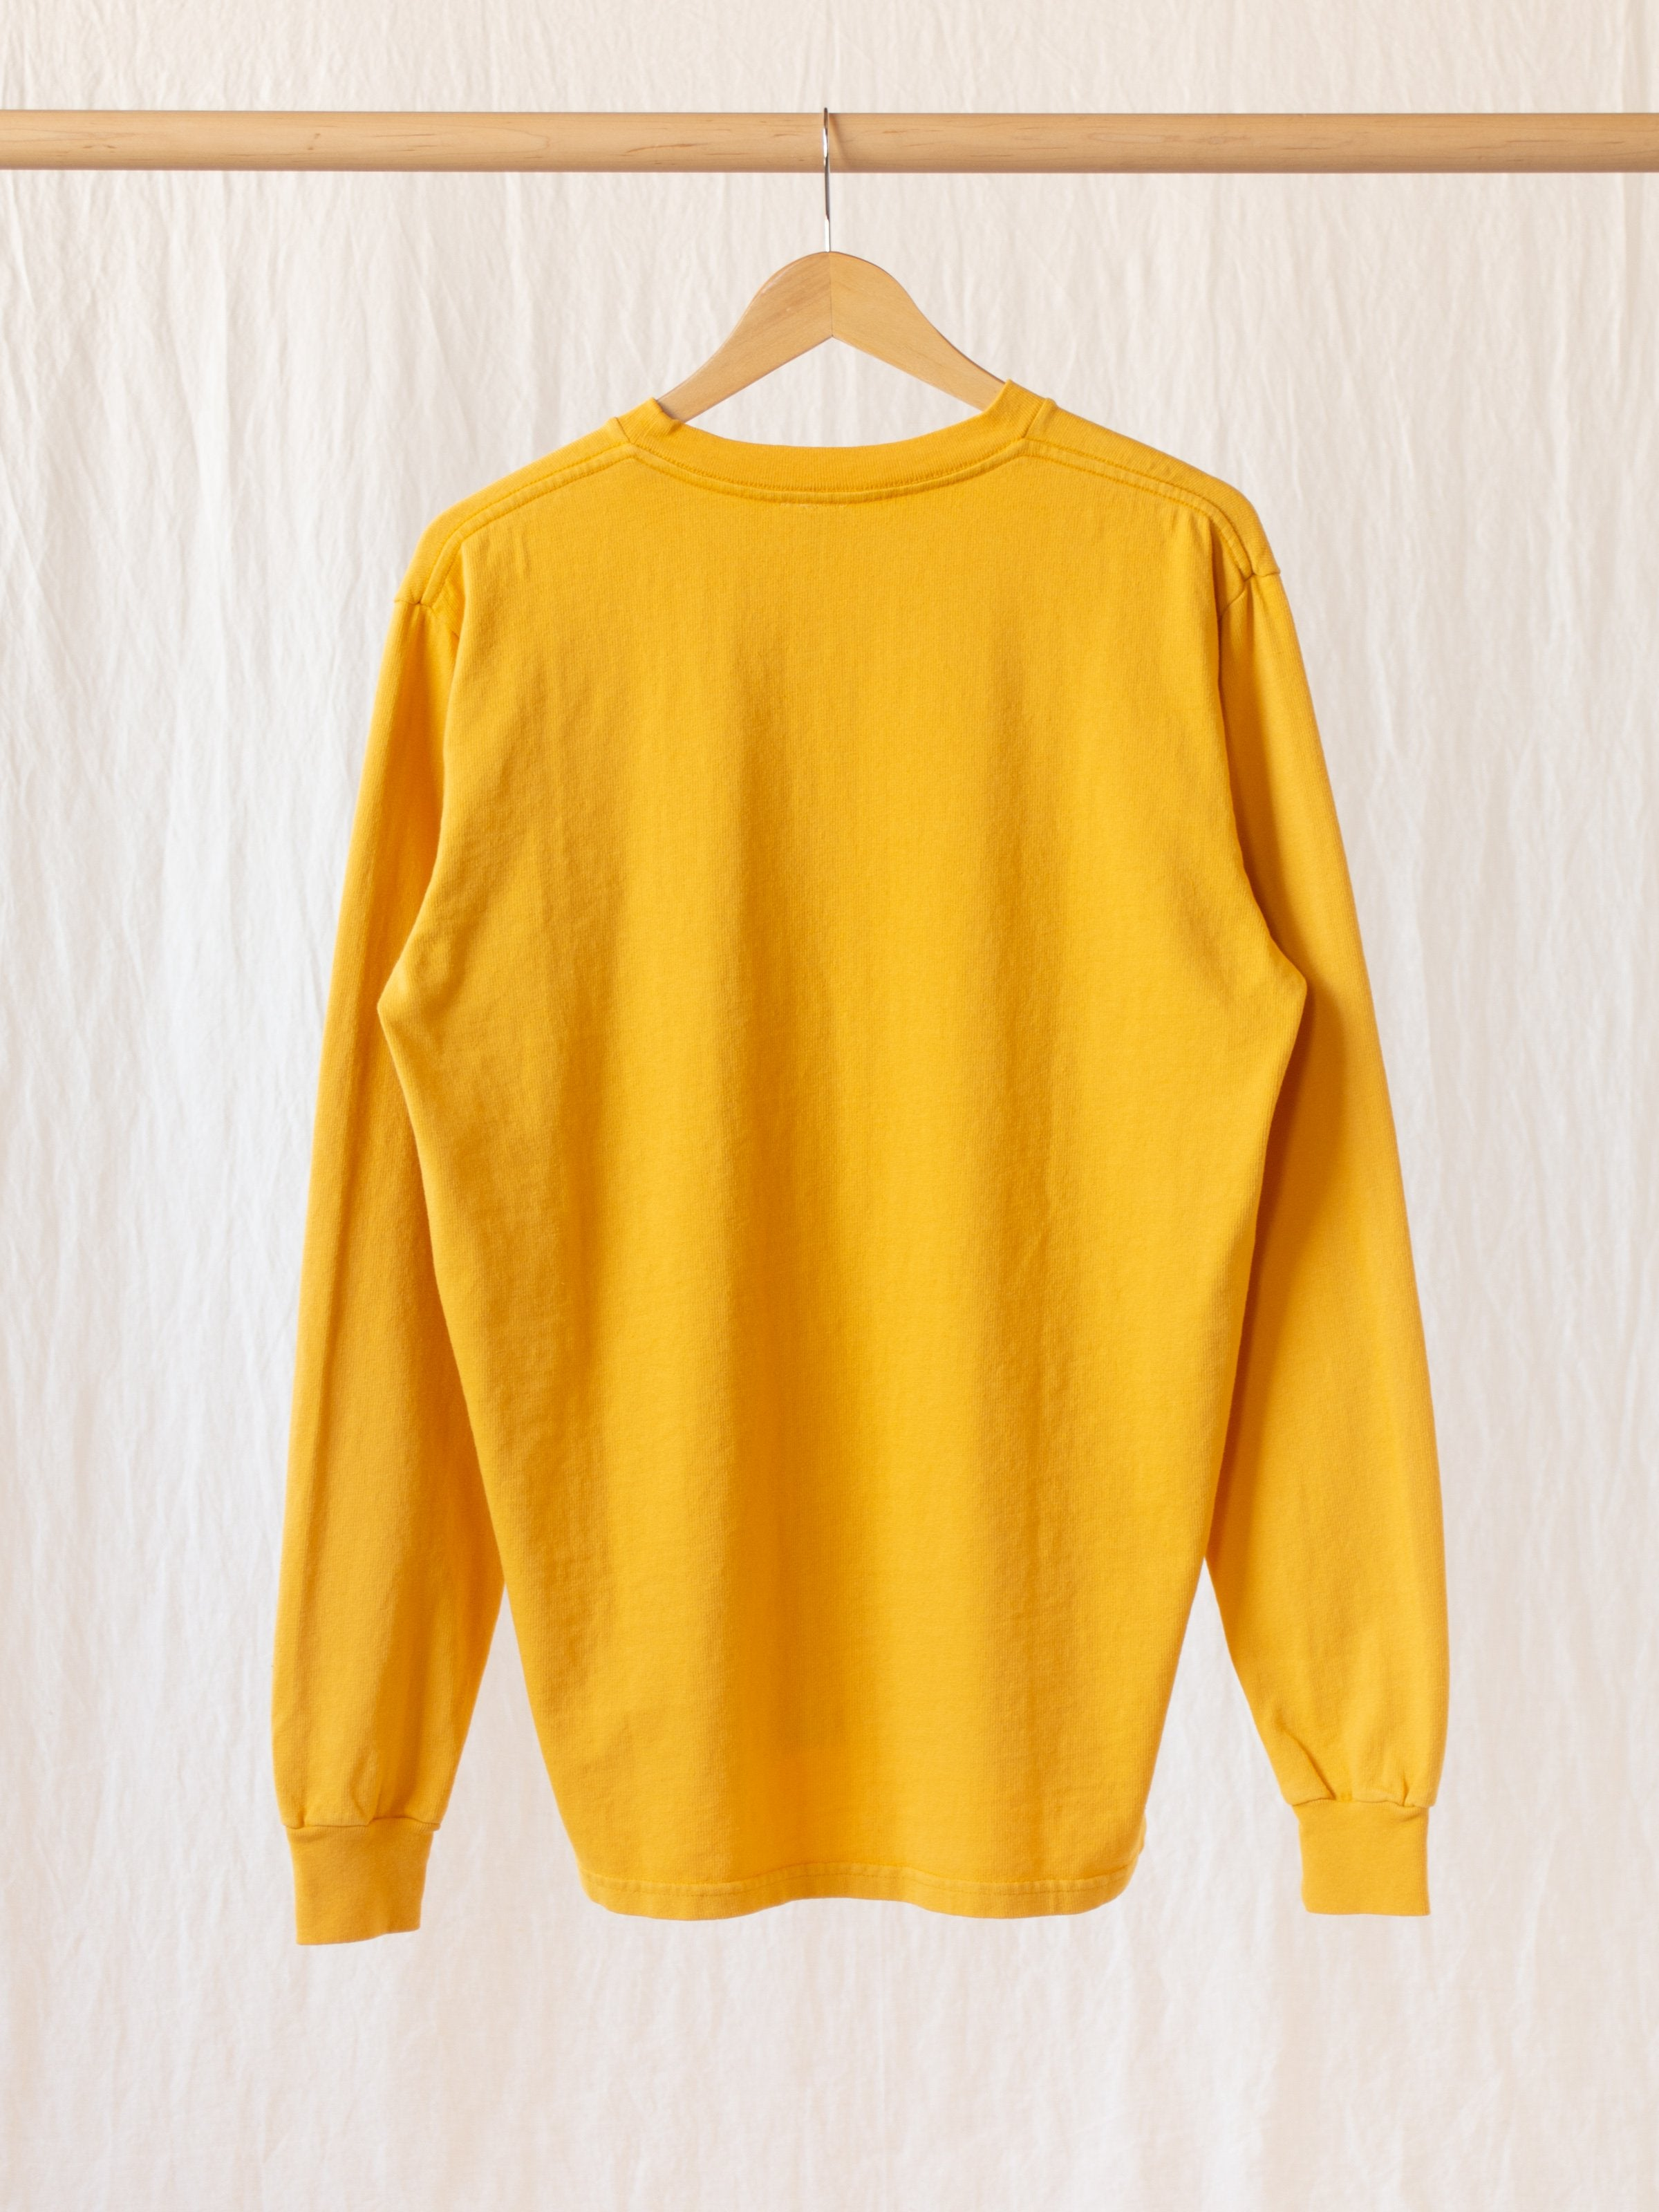 Namu Shop - paa LS Pocket Tee - Golden Yellow